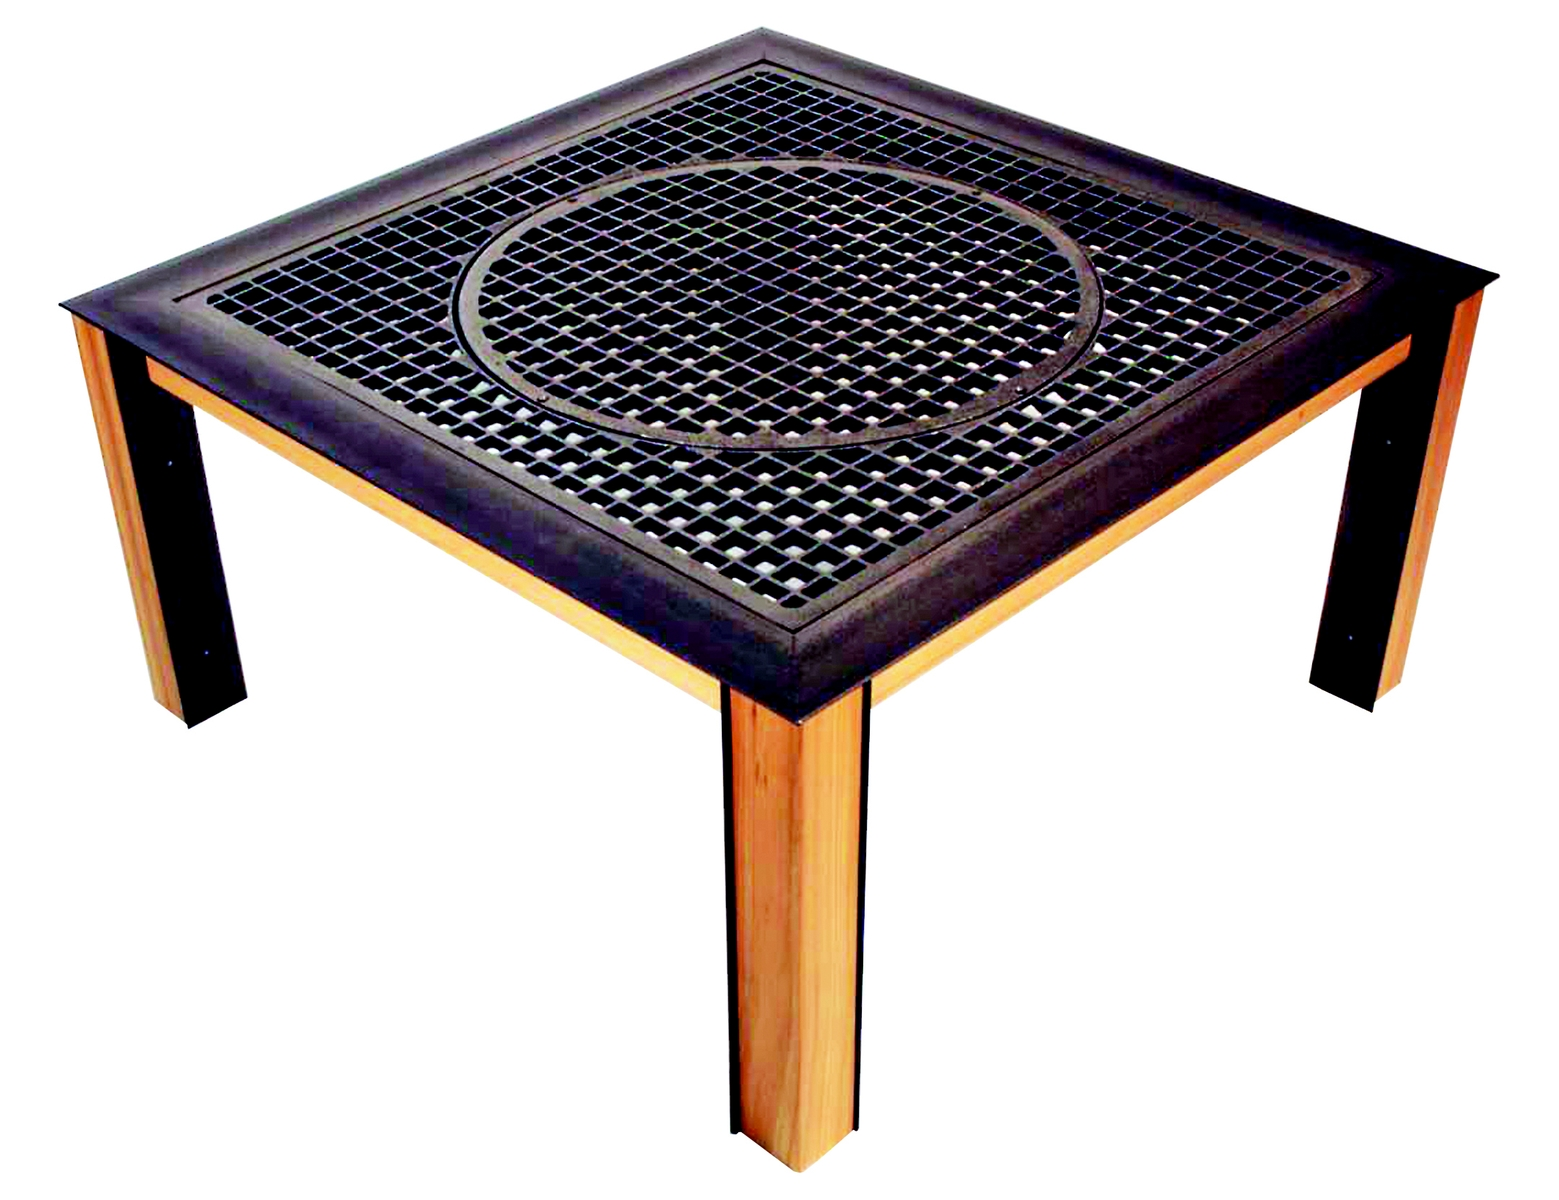 Grate Table #3 by Steelhead Studios at CustomMade.com